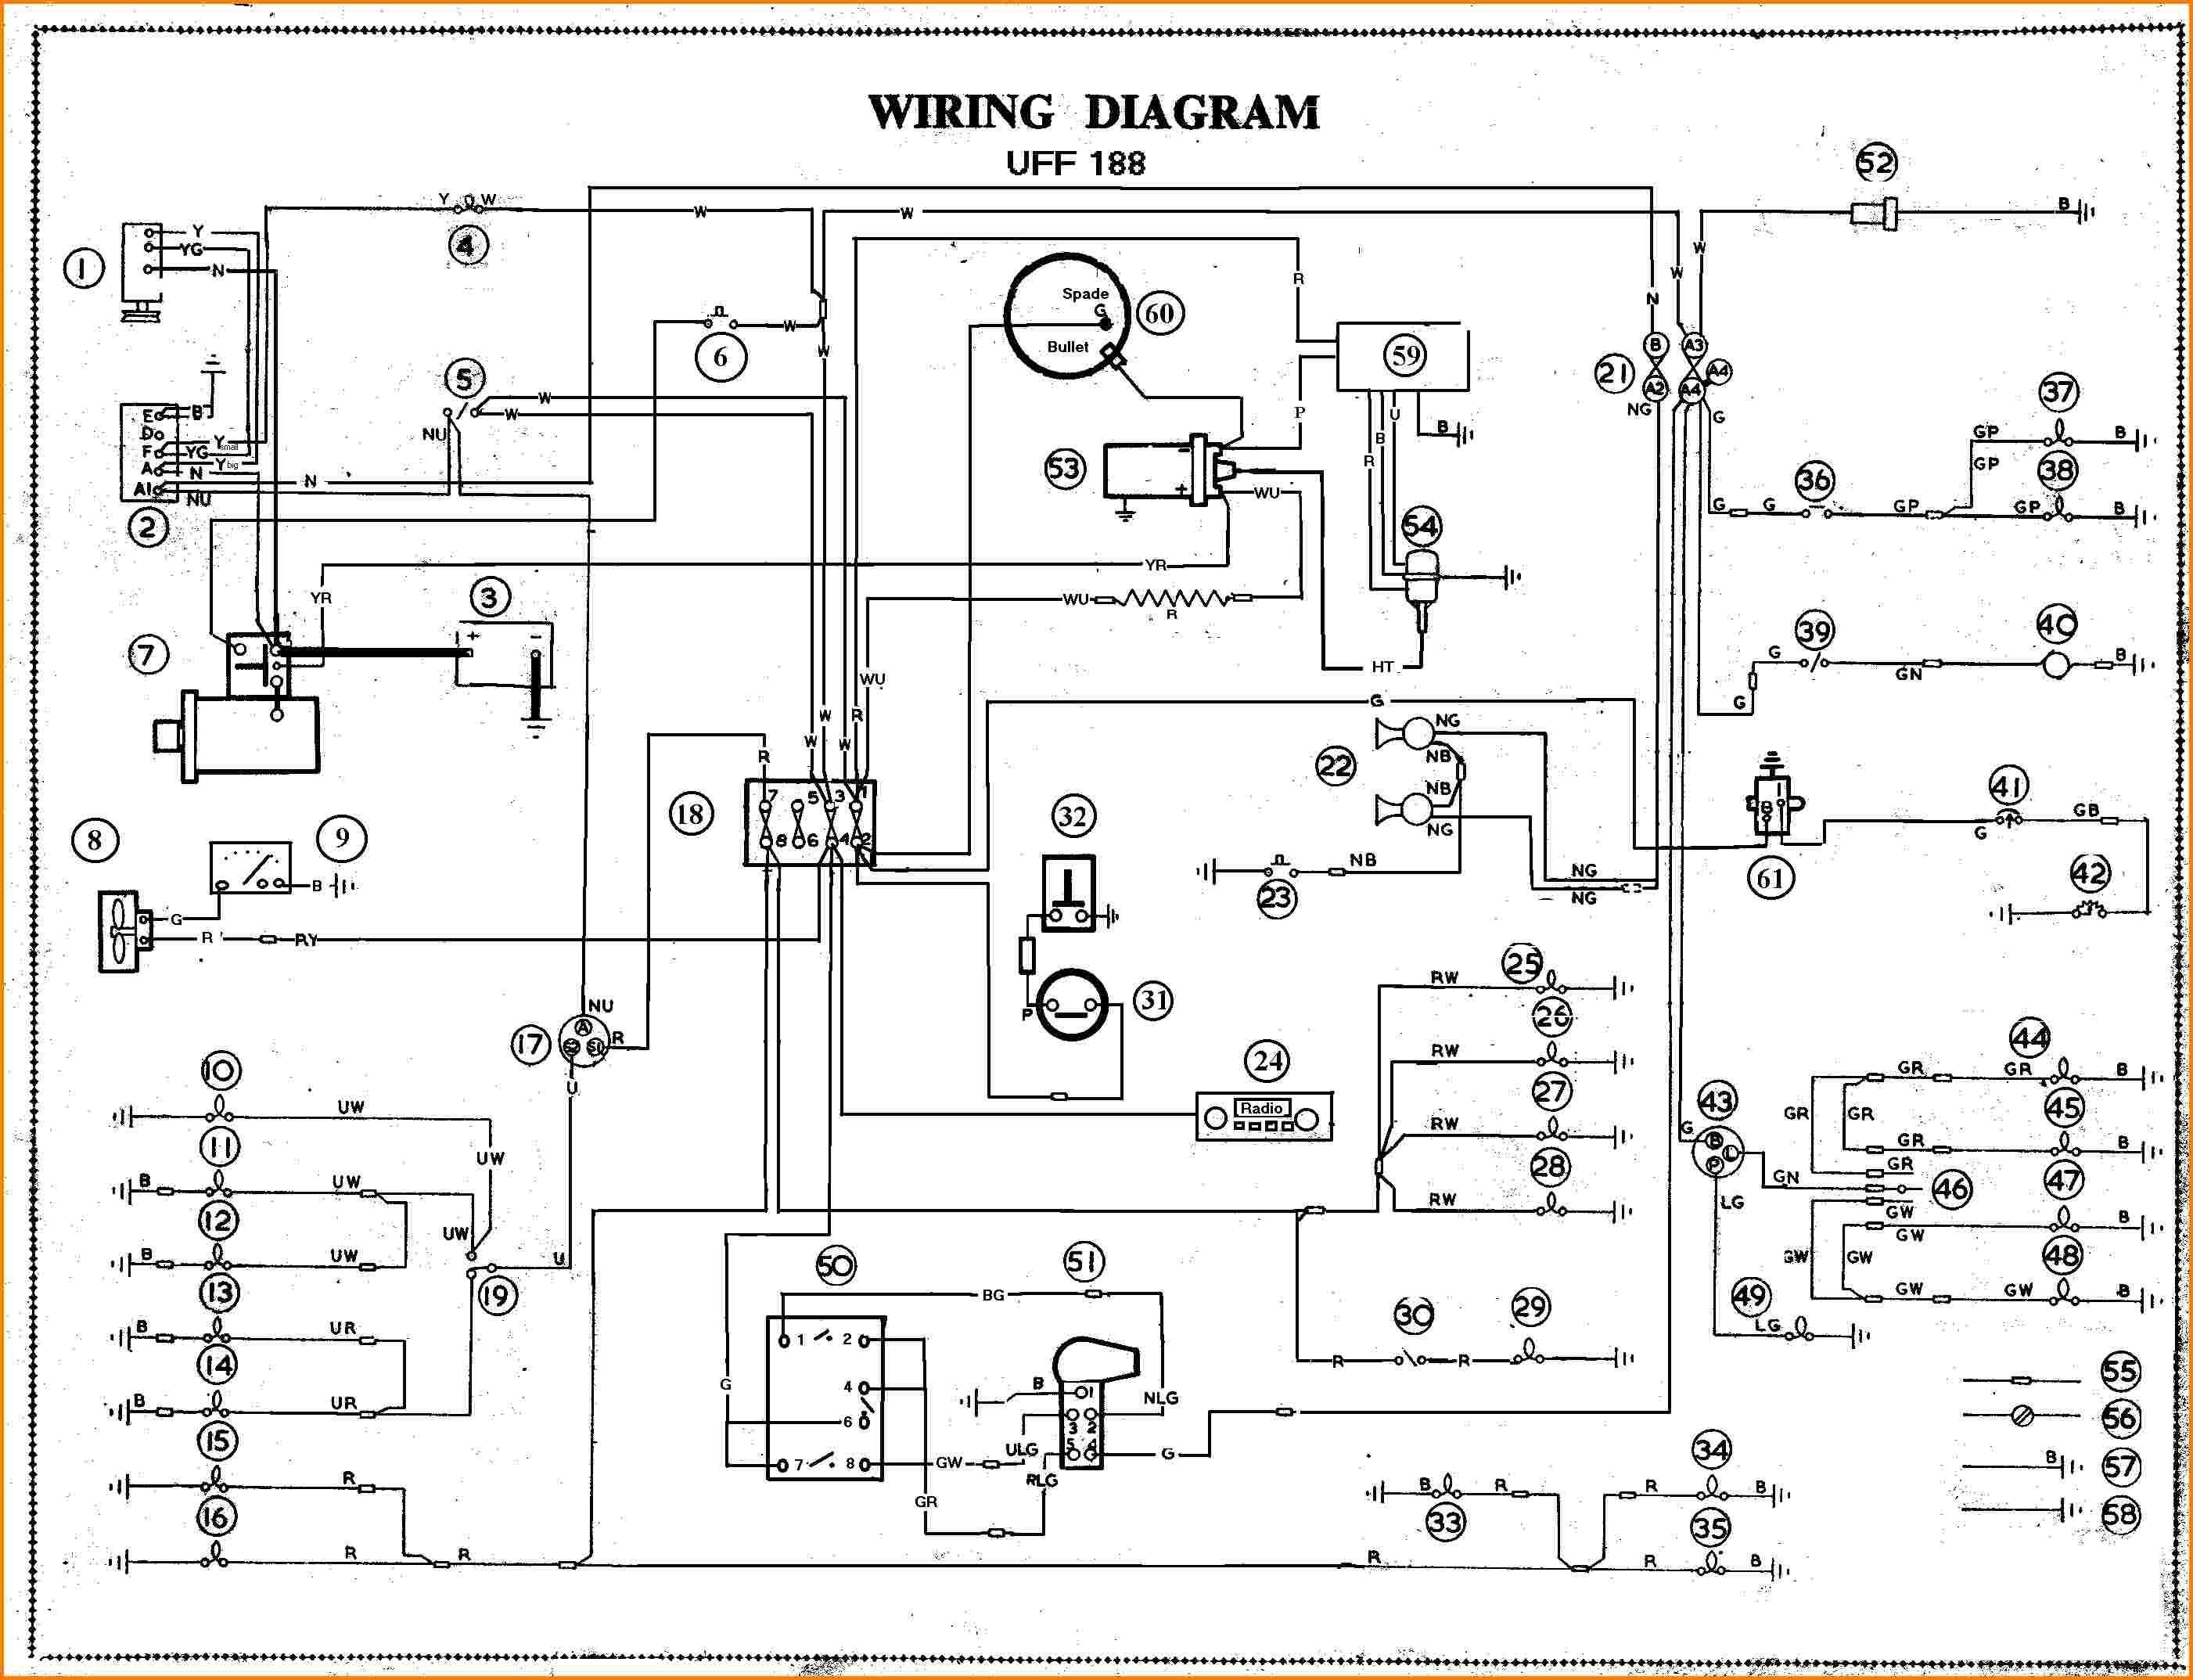 led dimming driver wiring diagram free download auto electrical wiring diagram software | free wiring diagram automotive wiring diagram free download